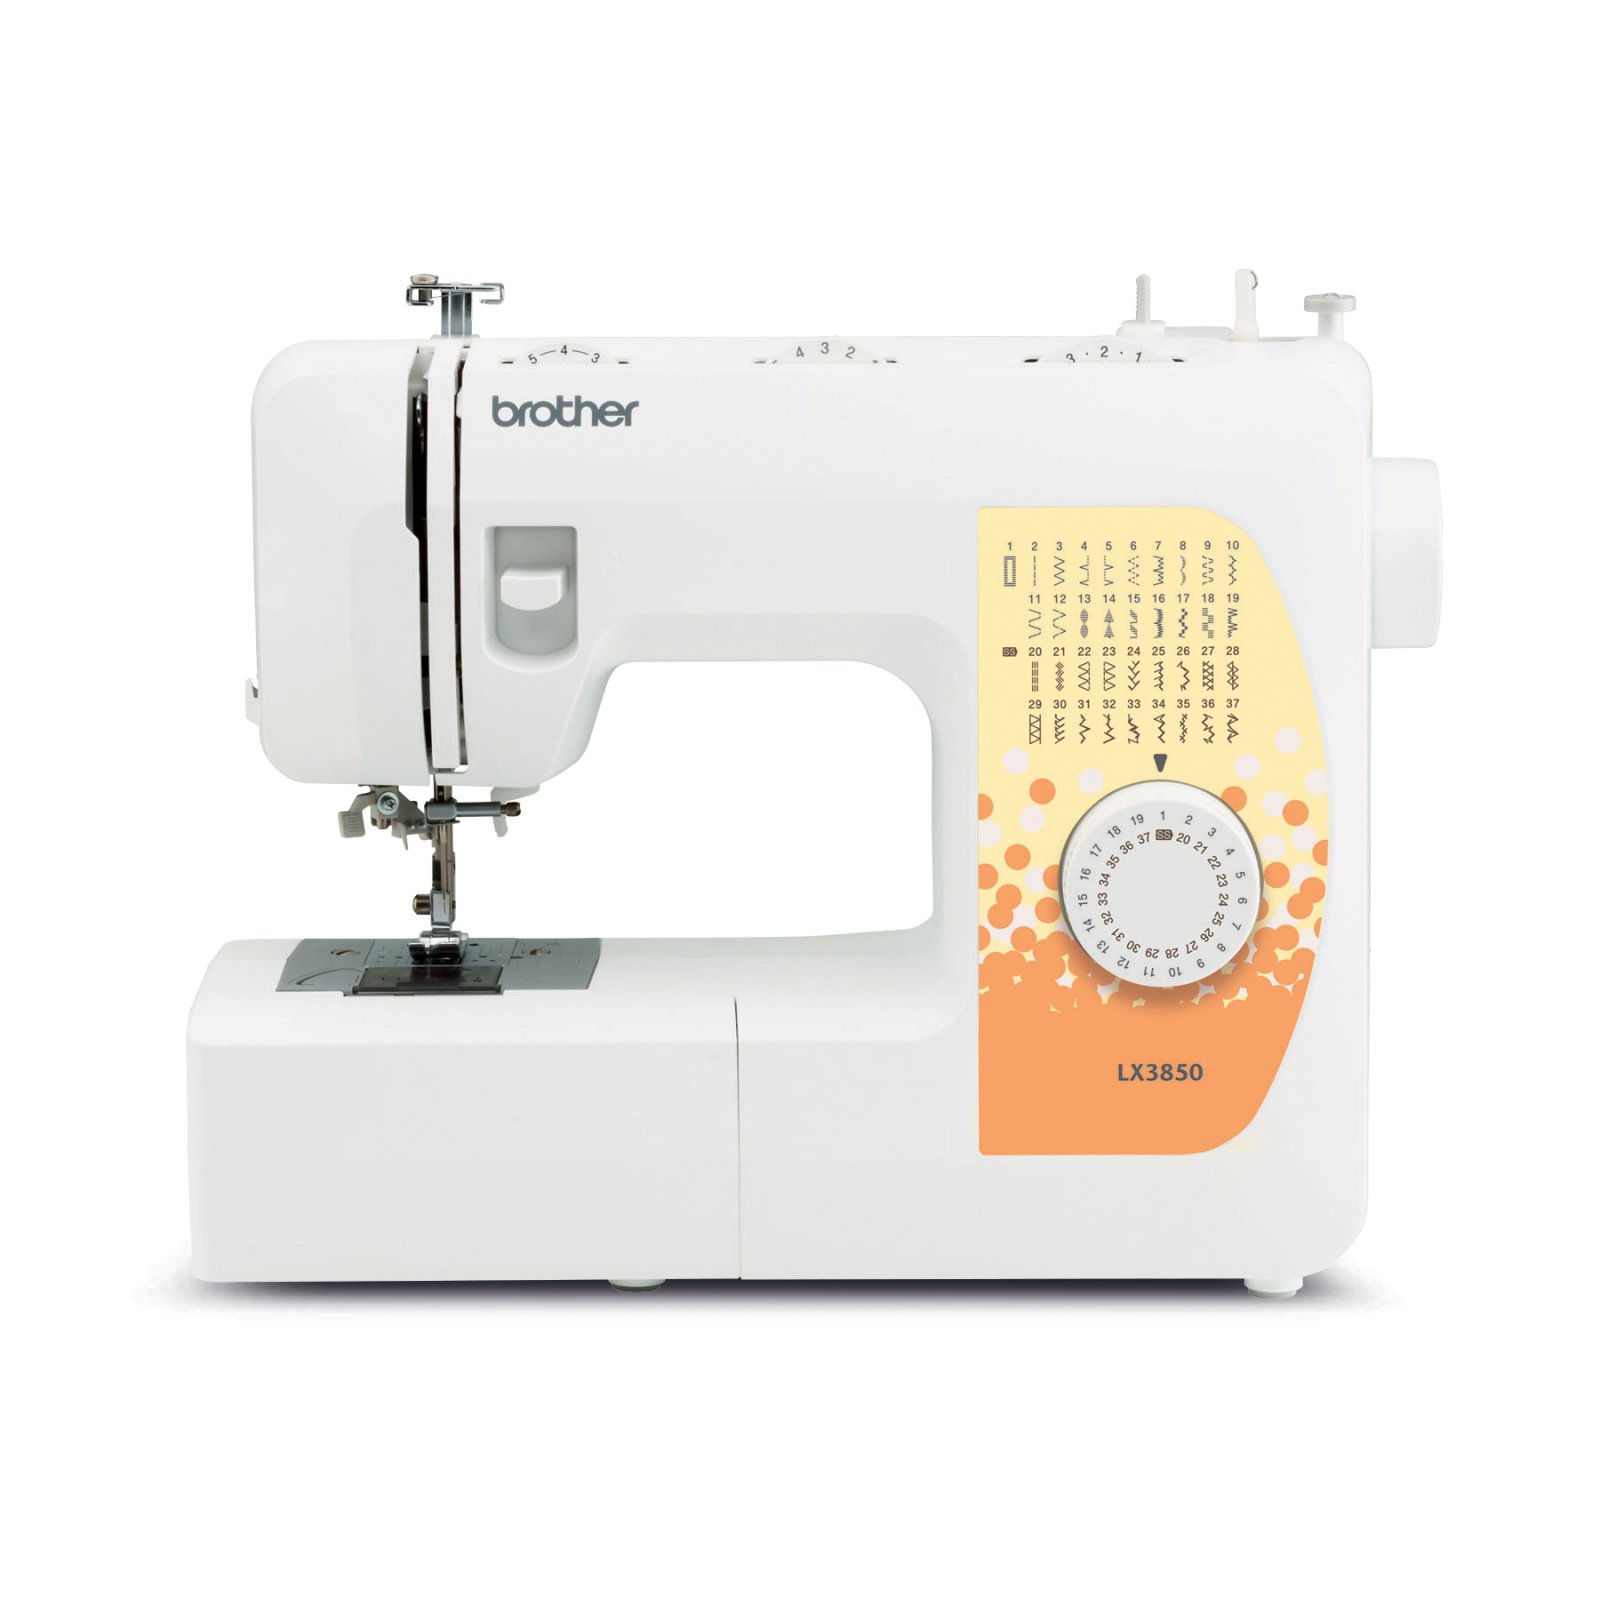 Brother RLX3850 Mechanical Sewing & Quilting $167.99